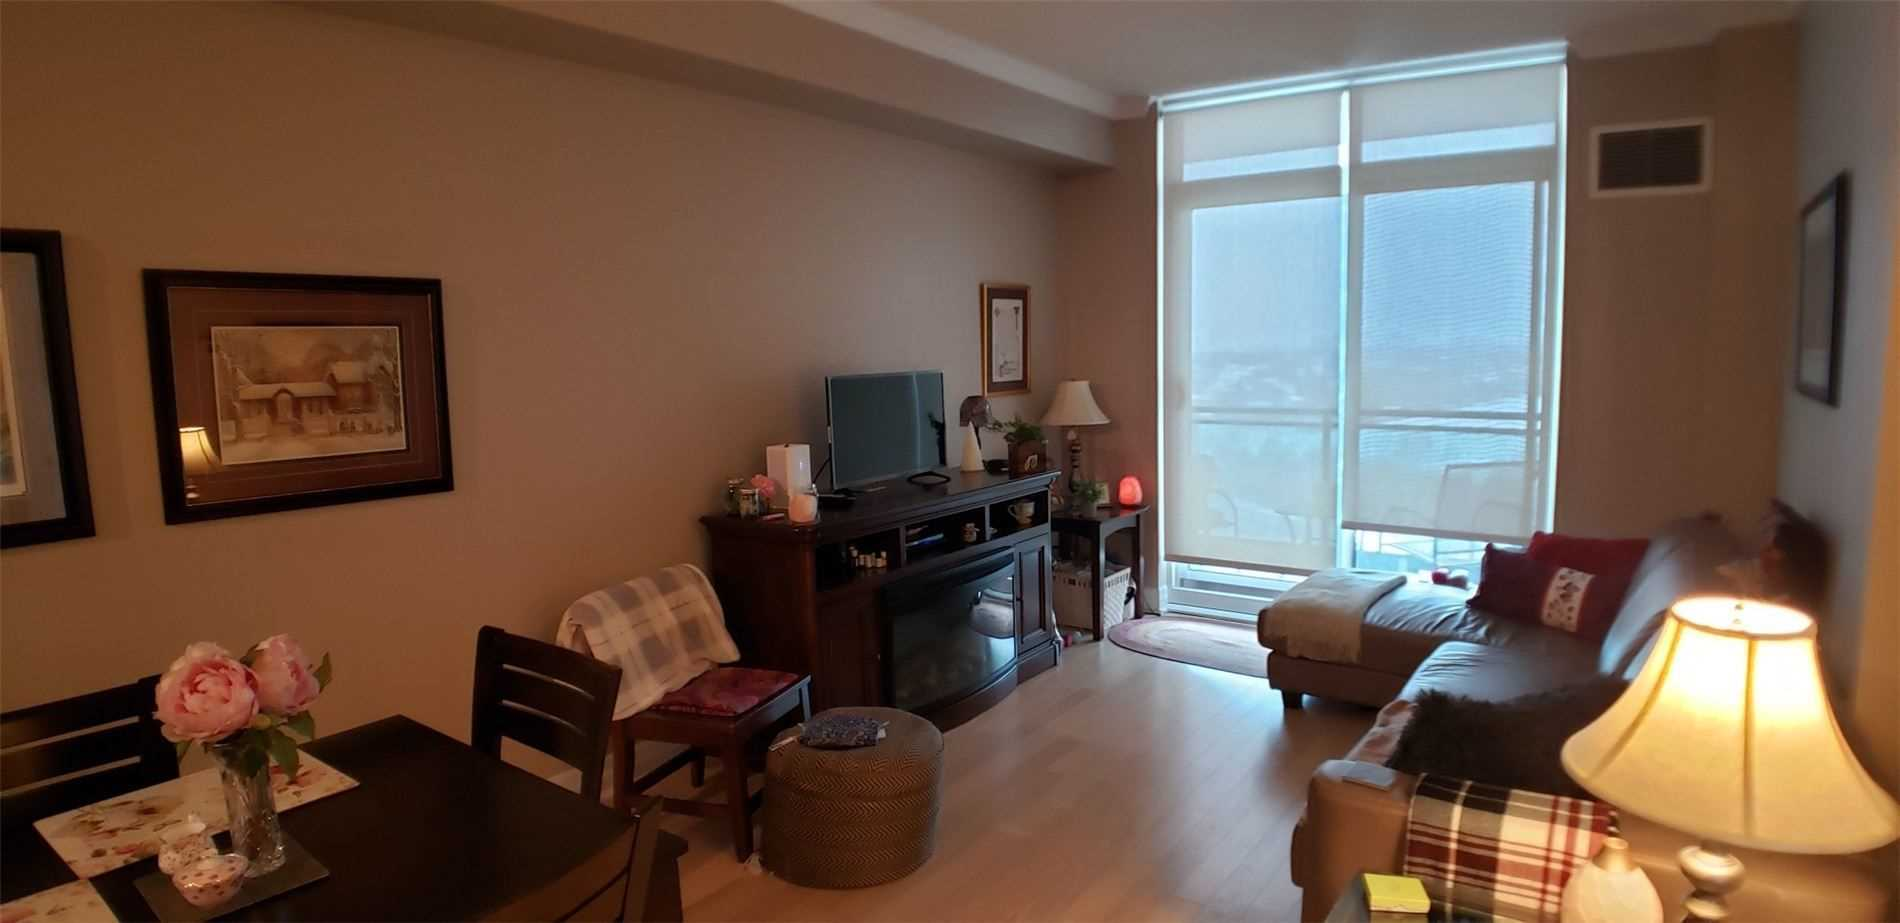 Image 15 of 15 showing inside of 1 Bedroom Condo Apt Apartment for Sale at 100 John St Unit# 803, Brampton L6W0A8